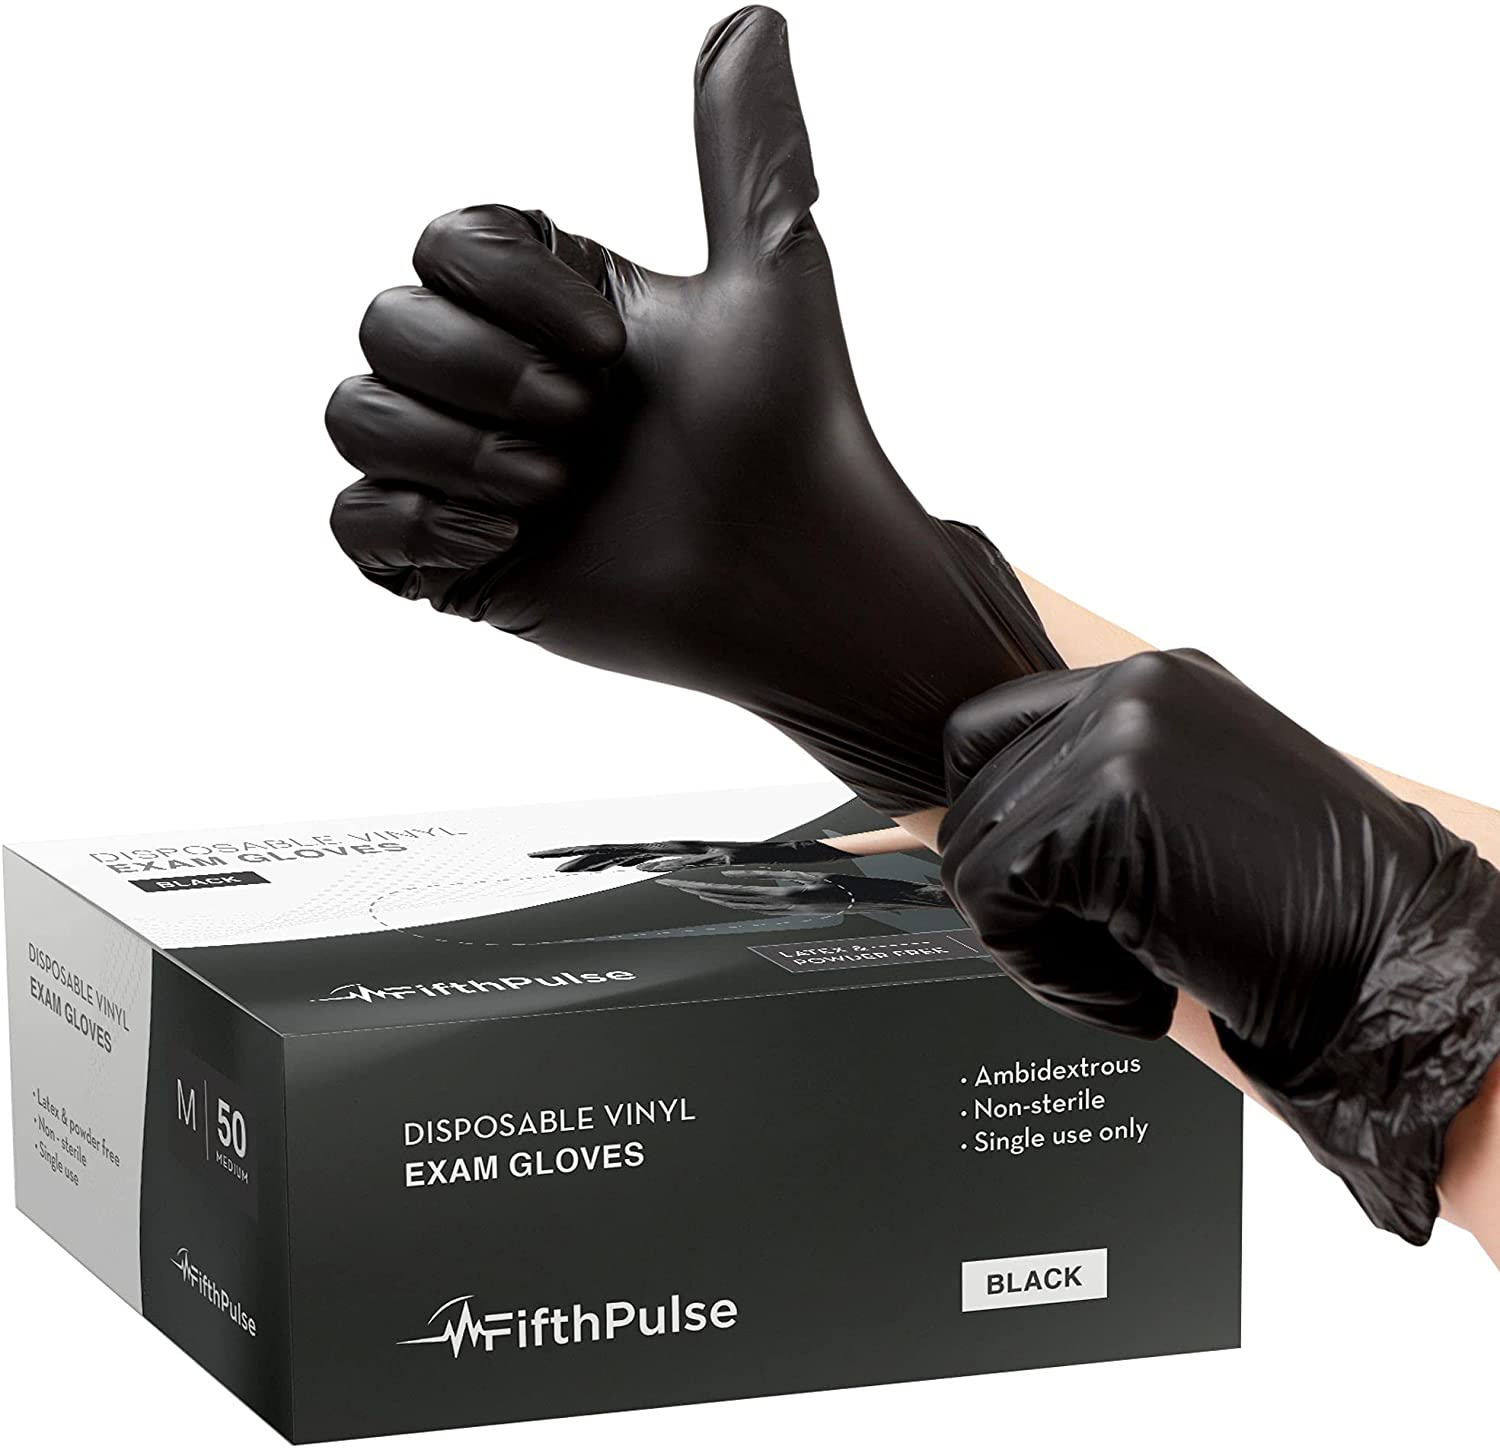 FifthPulse Black Vinyl Disposable Gloves Medium 50 Pack - Latex Free, Powder Free Medical Exam Gloves - Surgical, Home, Cleaning, and Food Gloves - 3 Mil Thickness